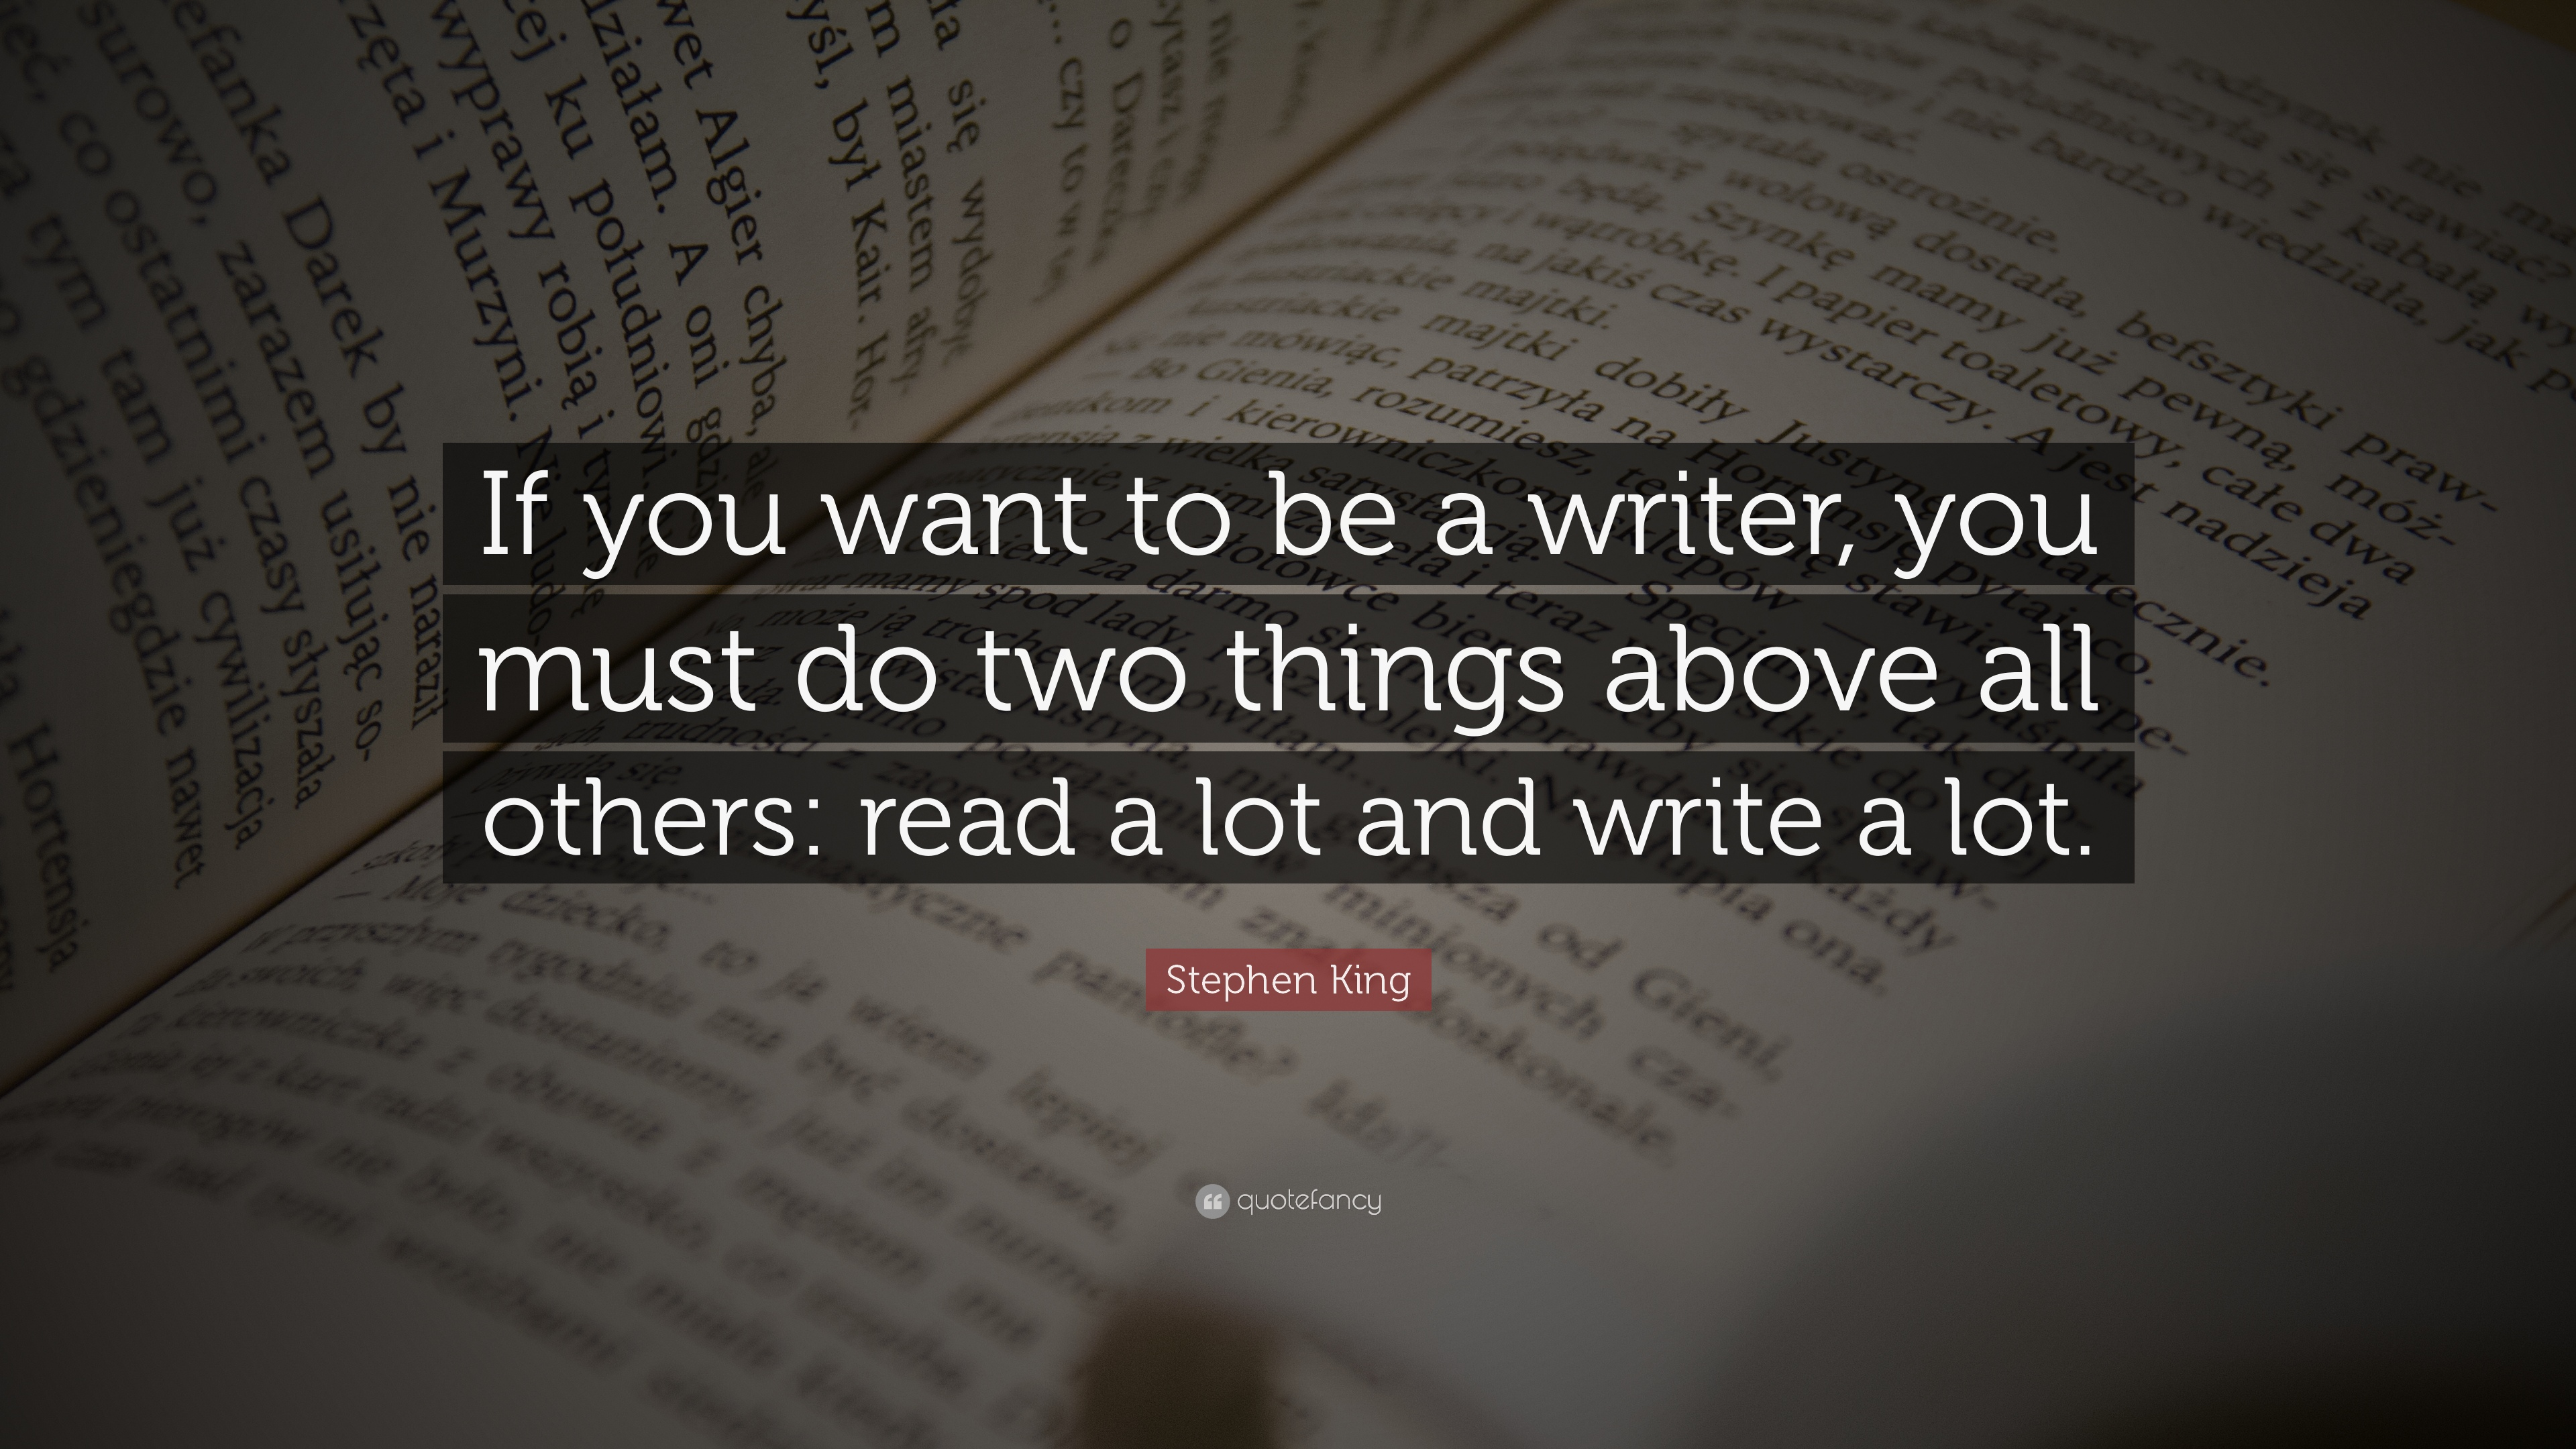 Dalai Lama Quotes Wallpapers Stephen King Quote If You Want To Be A Writer You Must